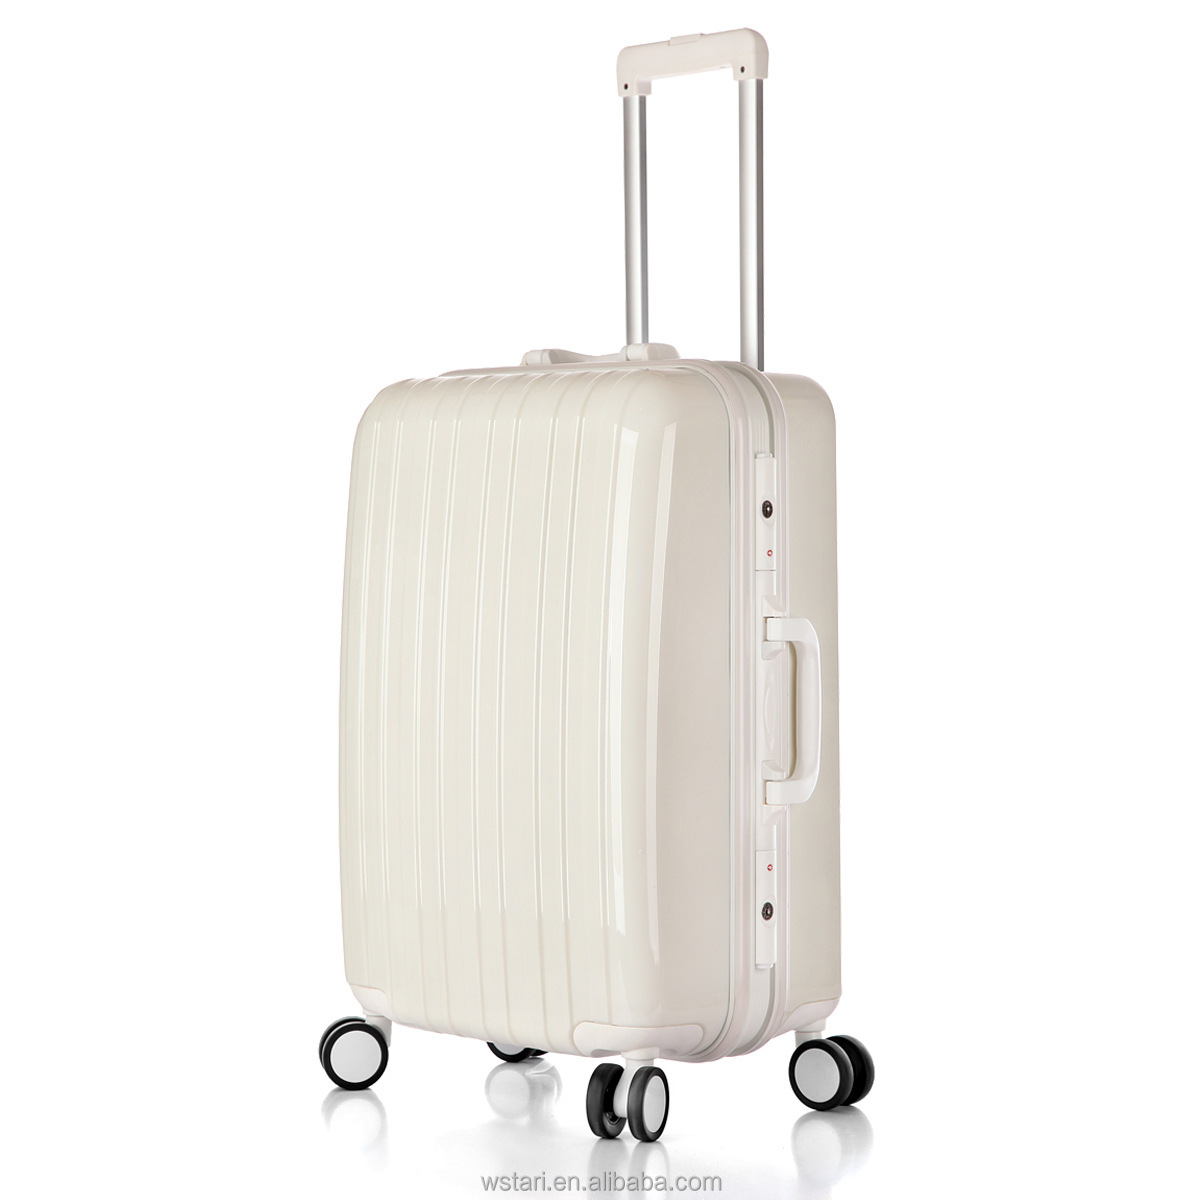 Brand White Universal Wheels Trolley Aluminum Frame Luggage Check ...